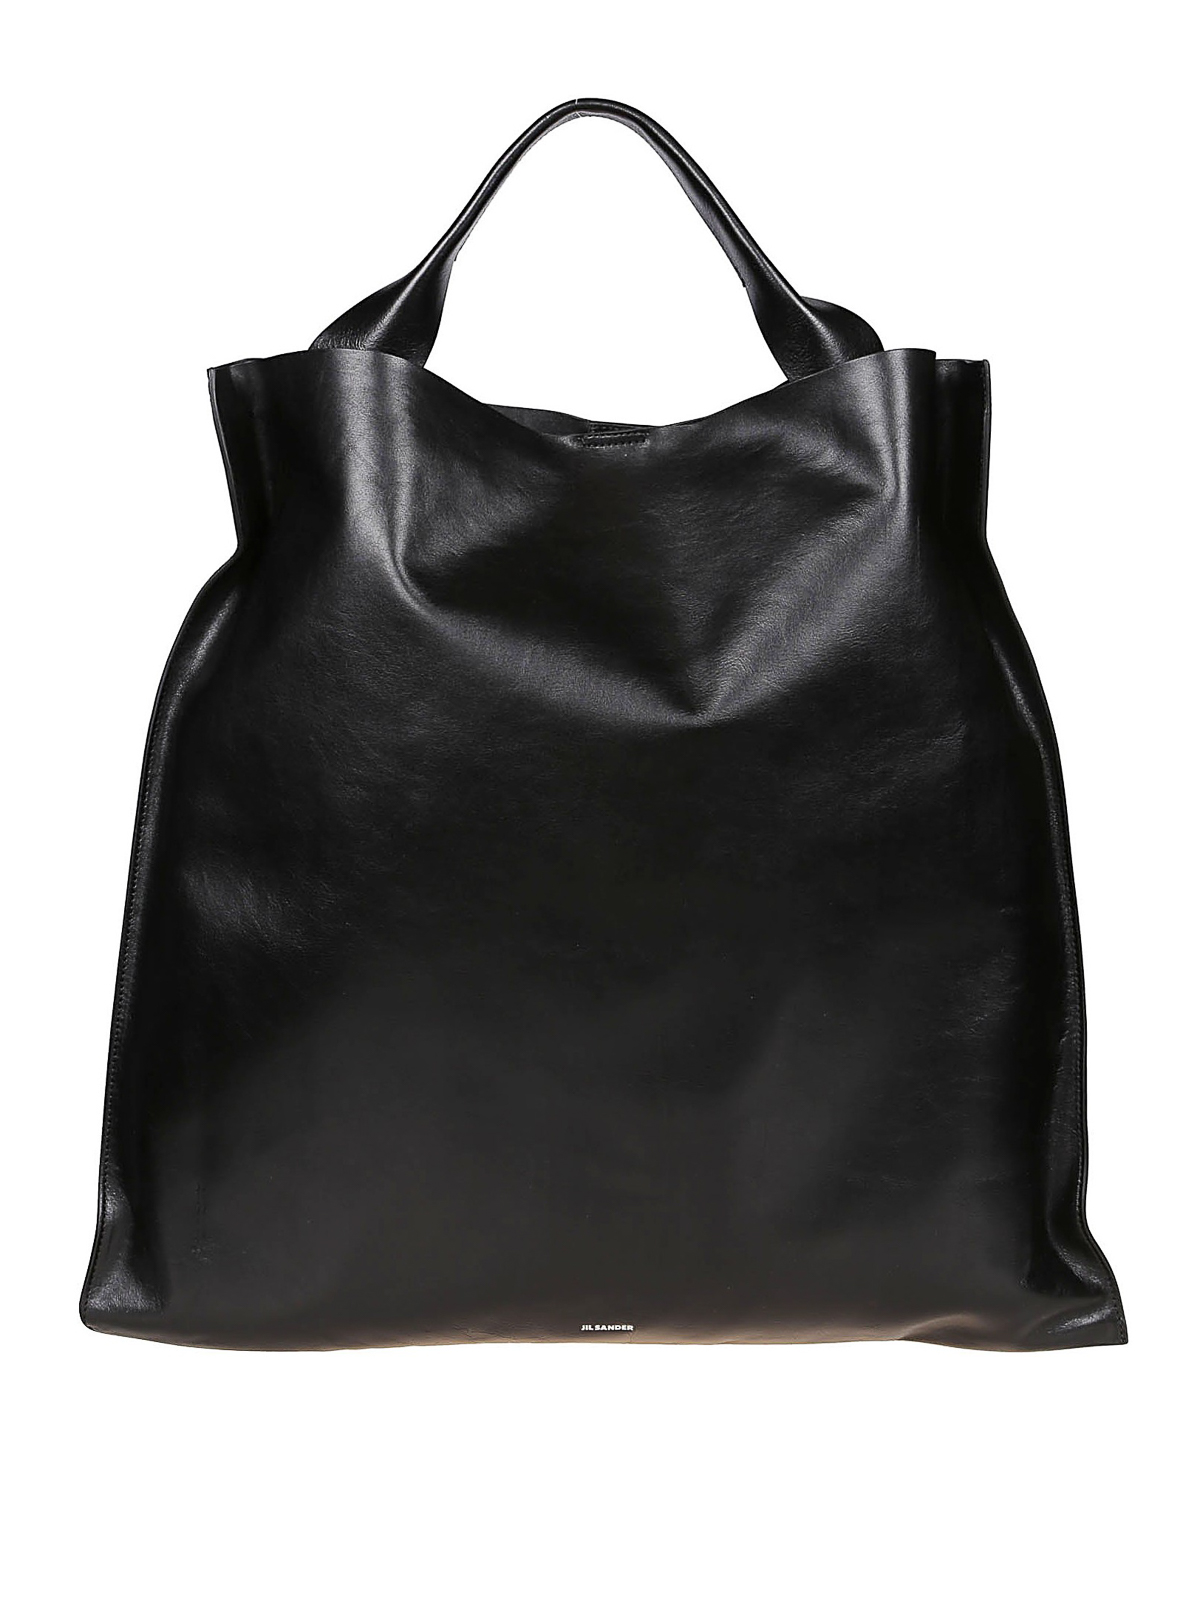 Jil Sander Tops XIAO BLACK MEDIUM SHOPPING BAG